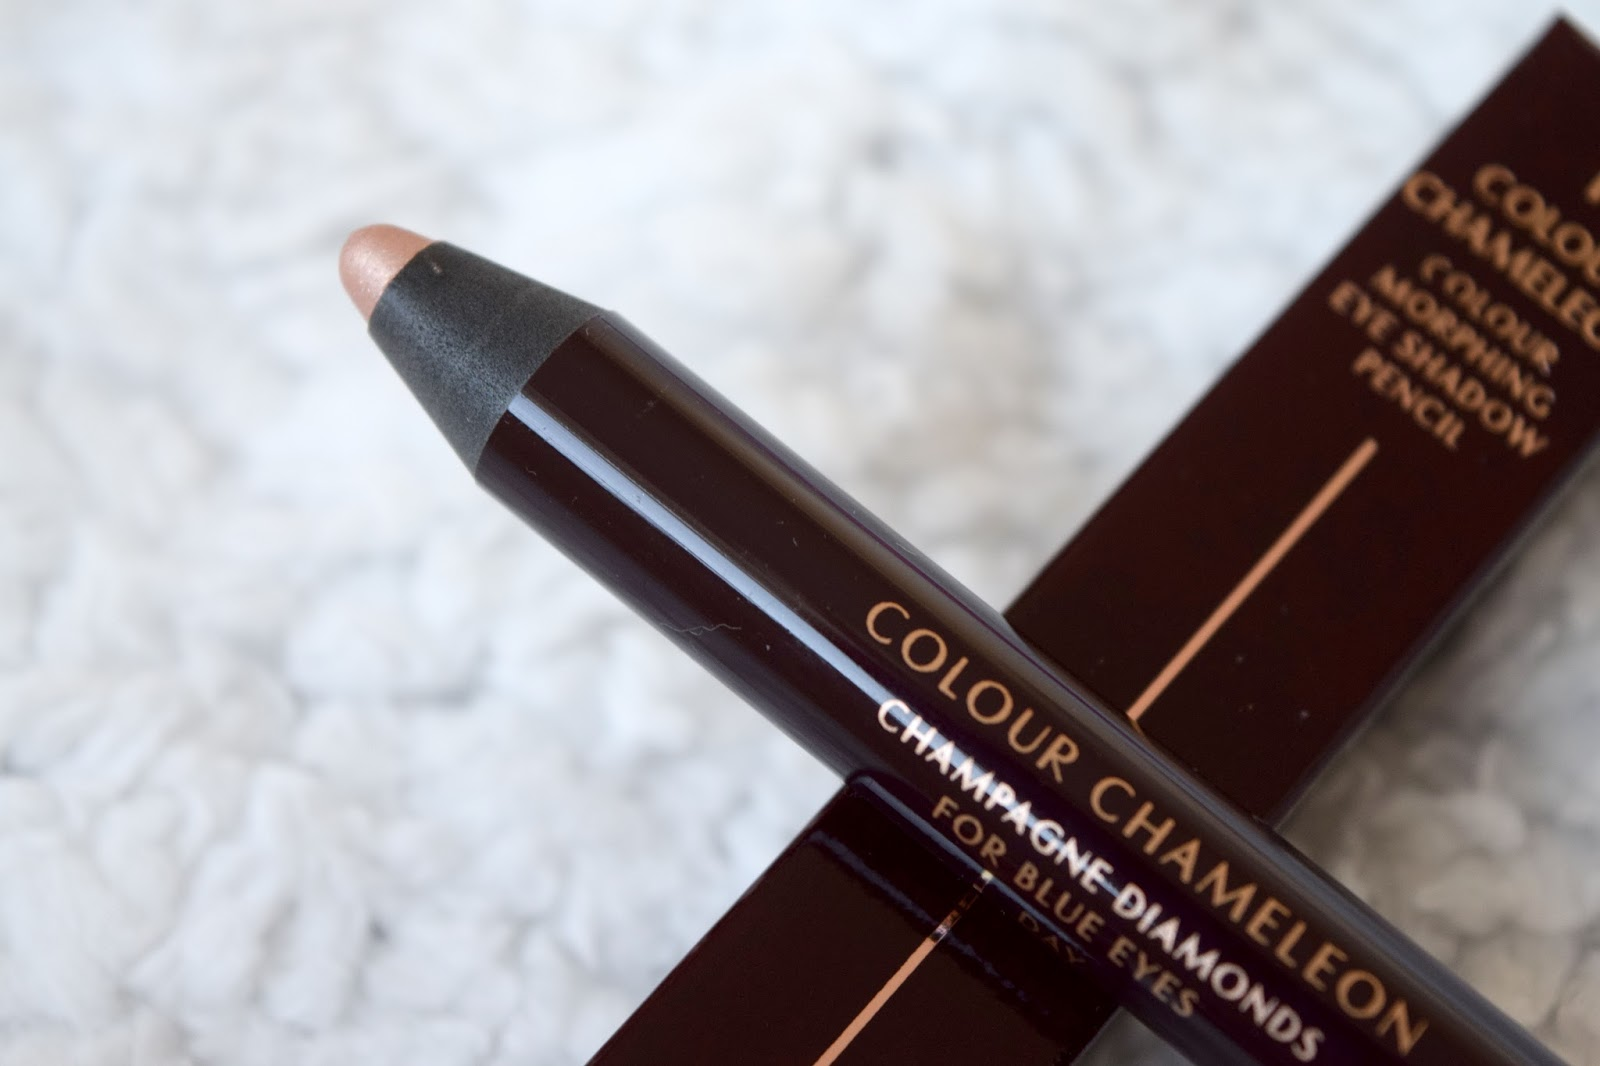 Charlotte Tilbury Colour Chameleon in Champagne Diamonds